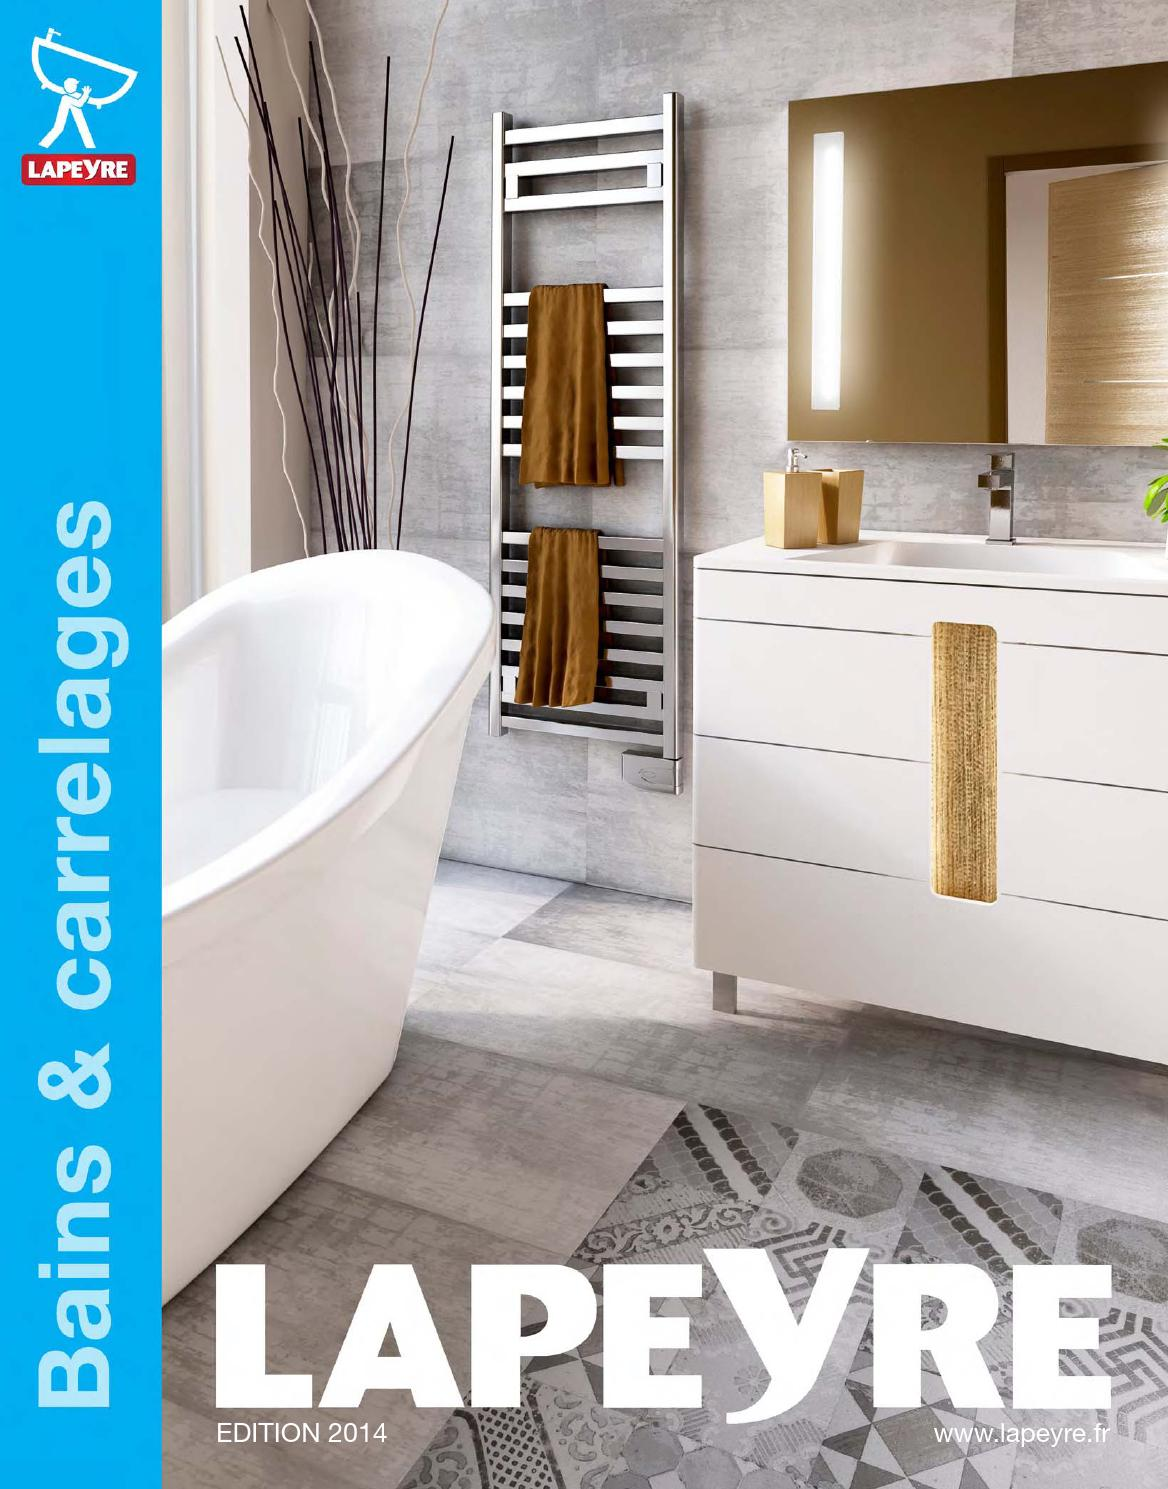 Catalogue Lapeyre - Bains & Carrelages 2014 by joe monroe - issuu